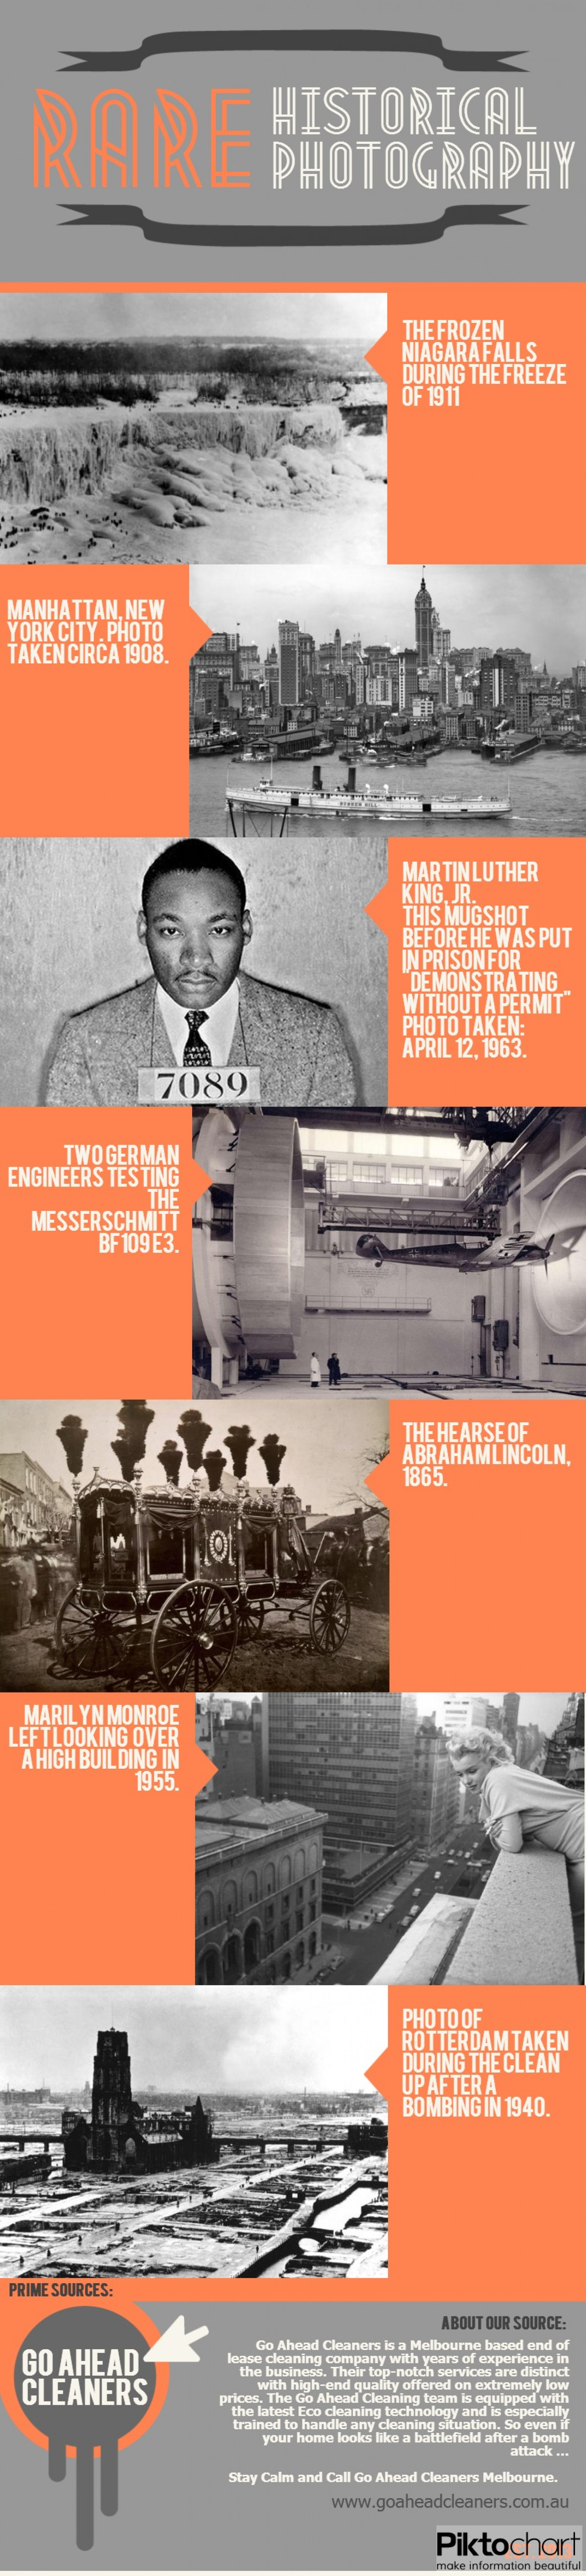 Rare Historical Photography Infographic